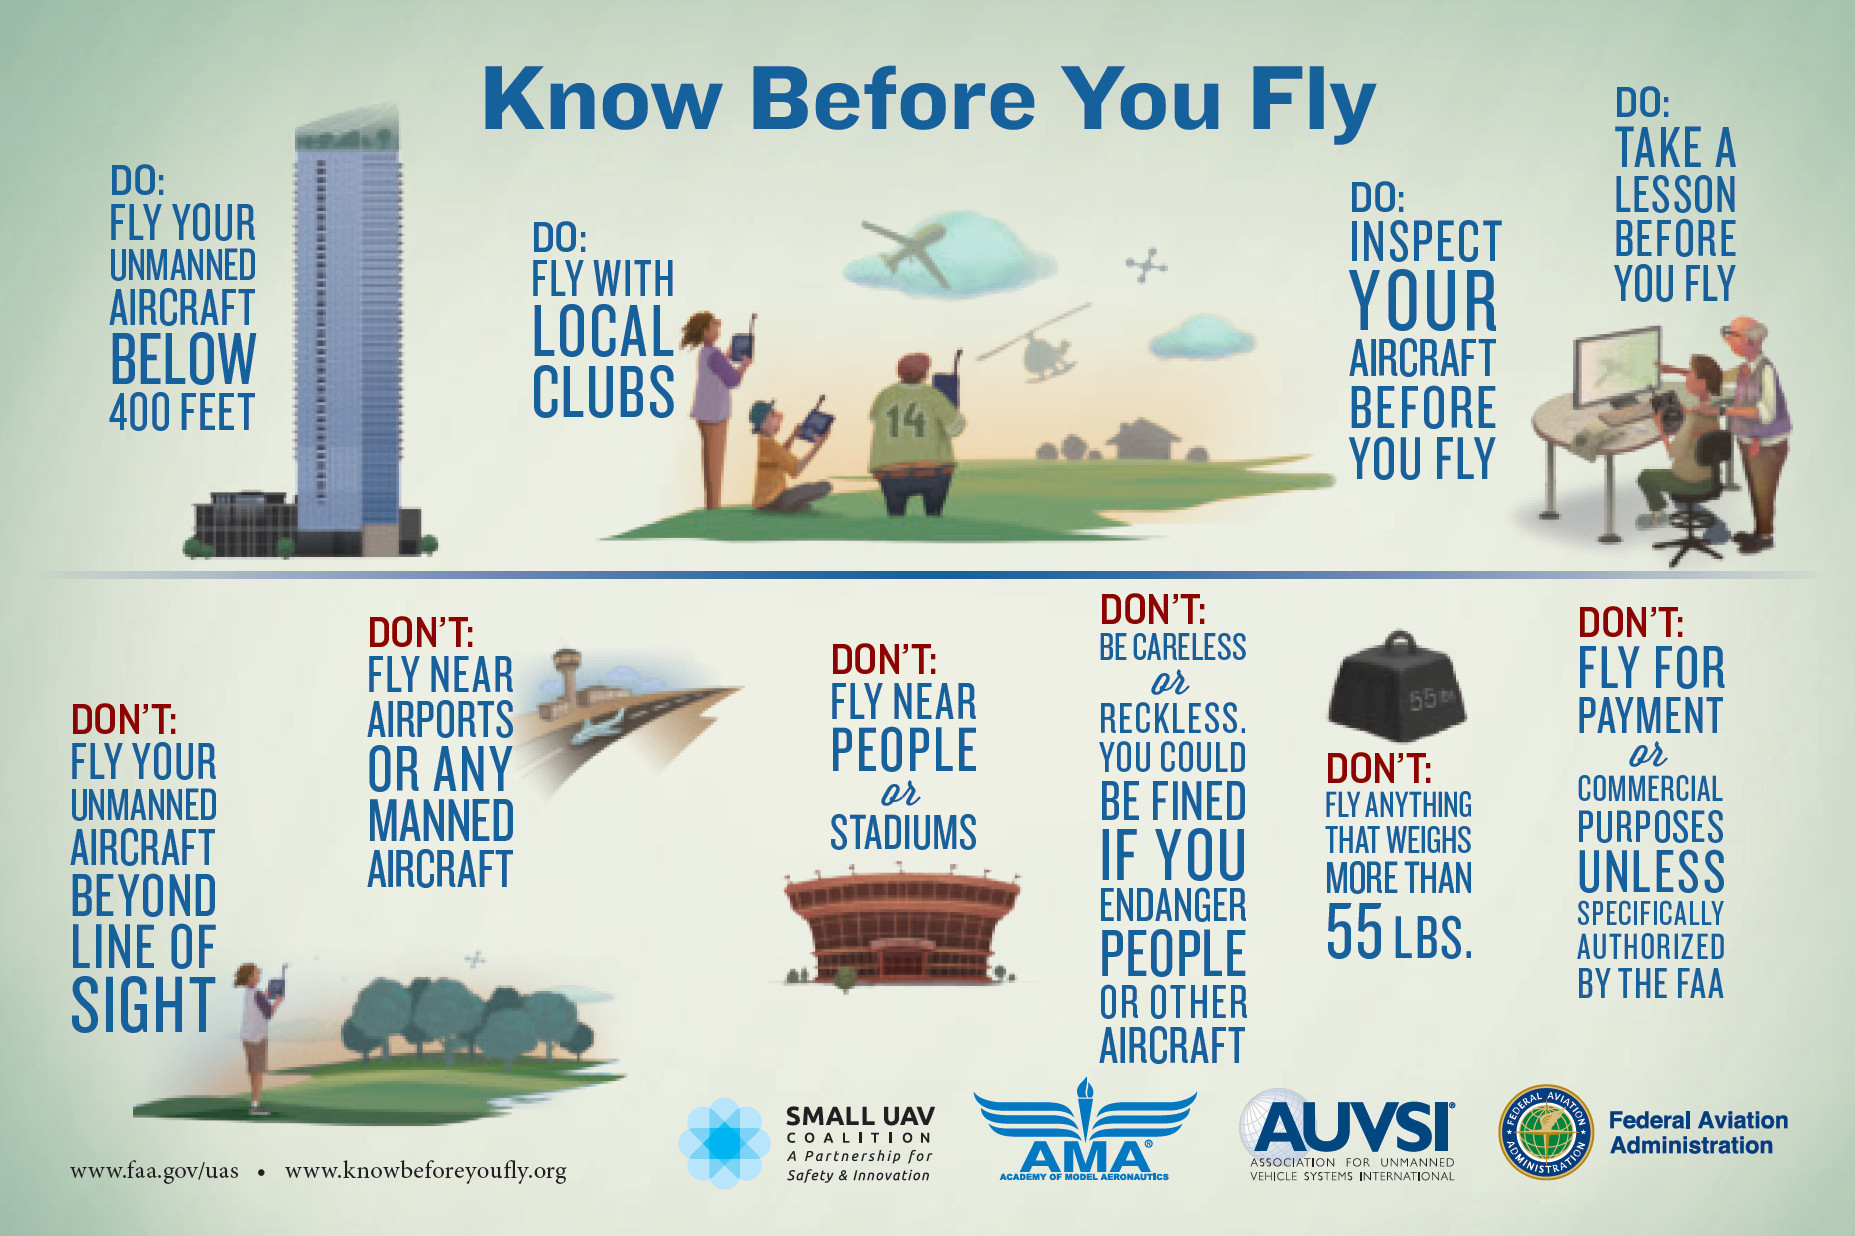 knowbeforeyoufly